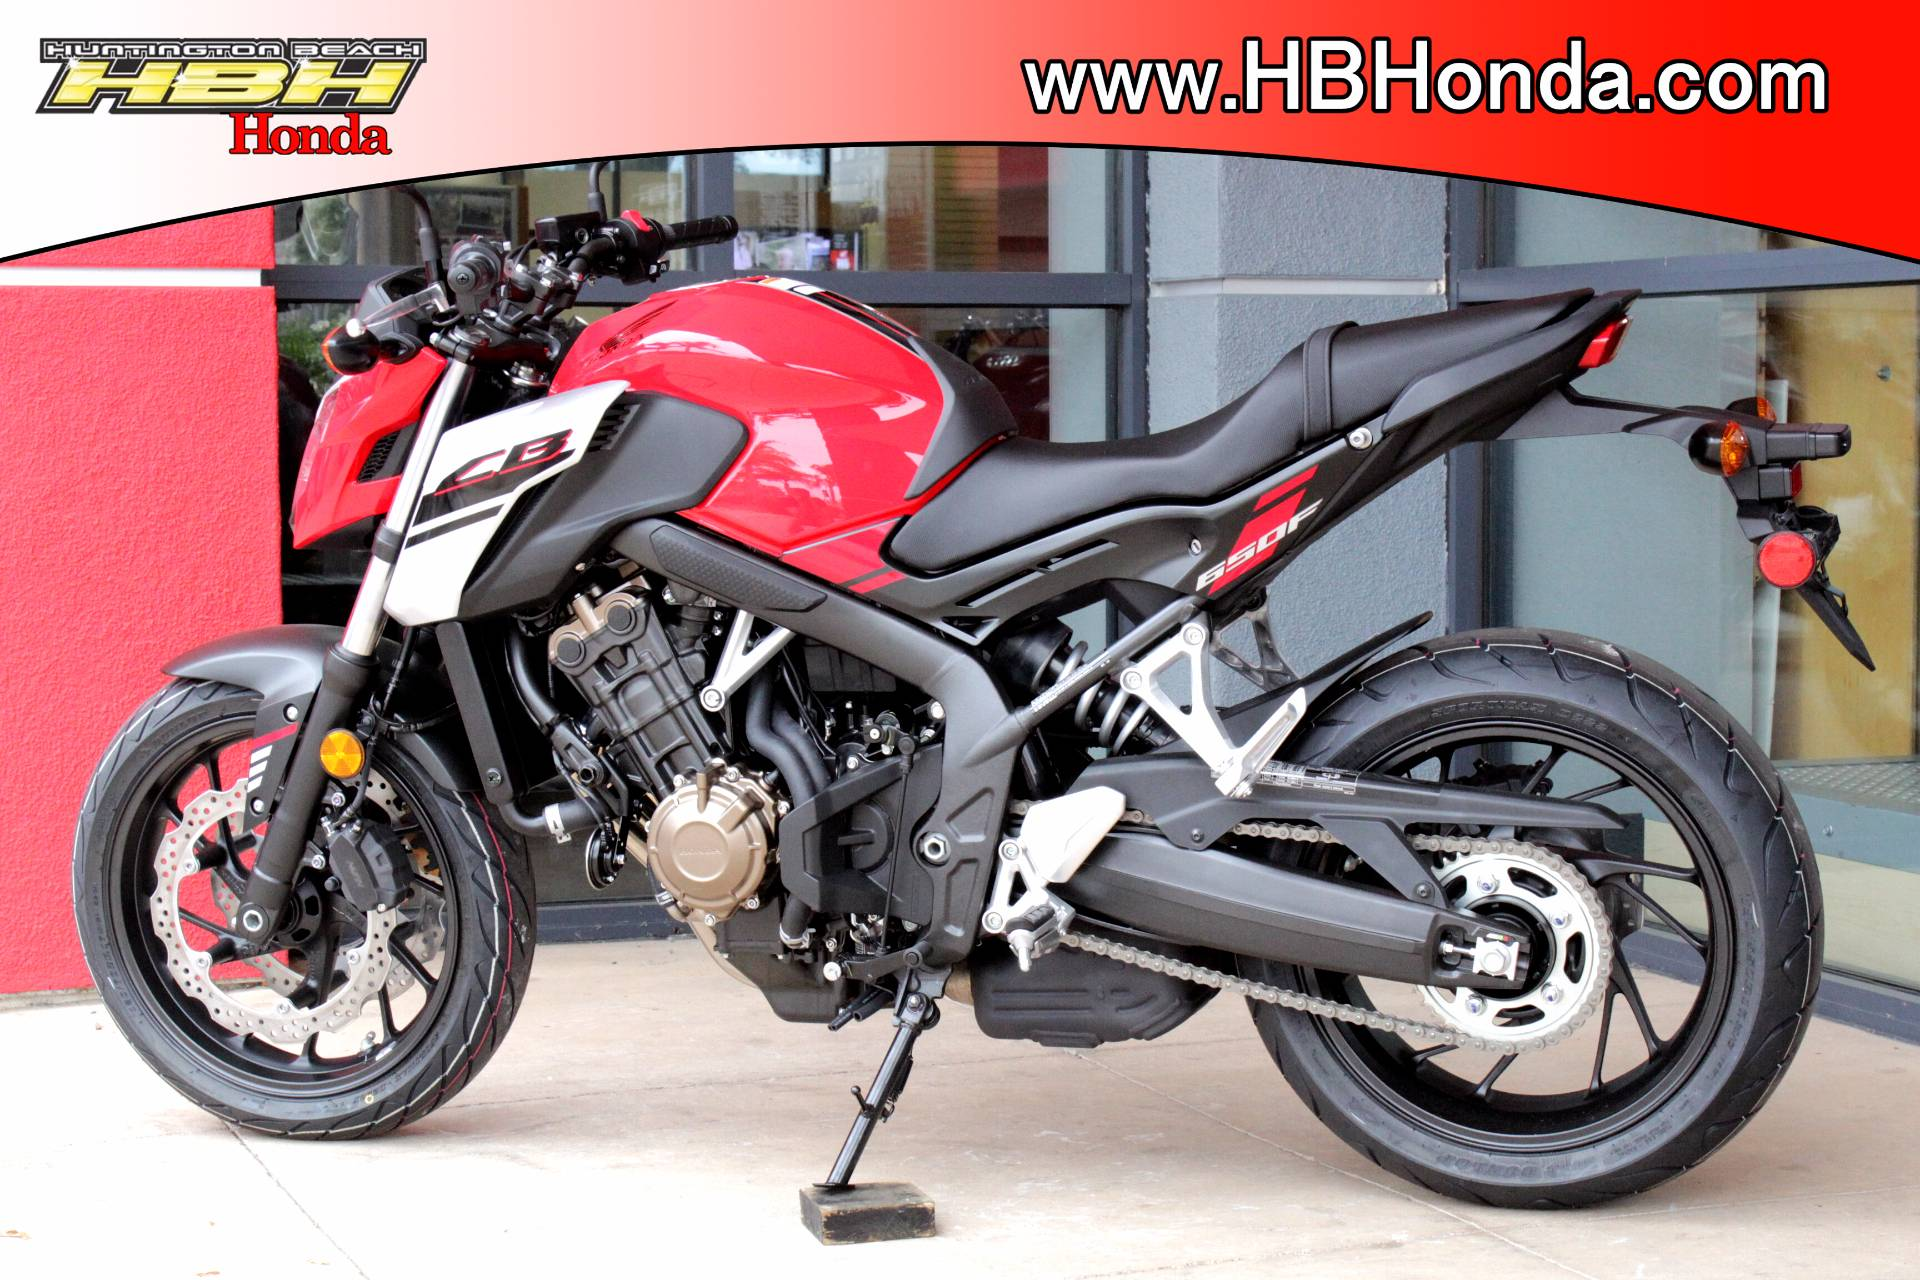 New 2018 Honda Cb650f Motorcycles For Sale In Huntington